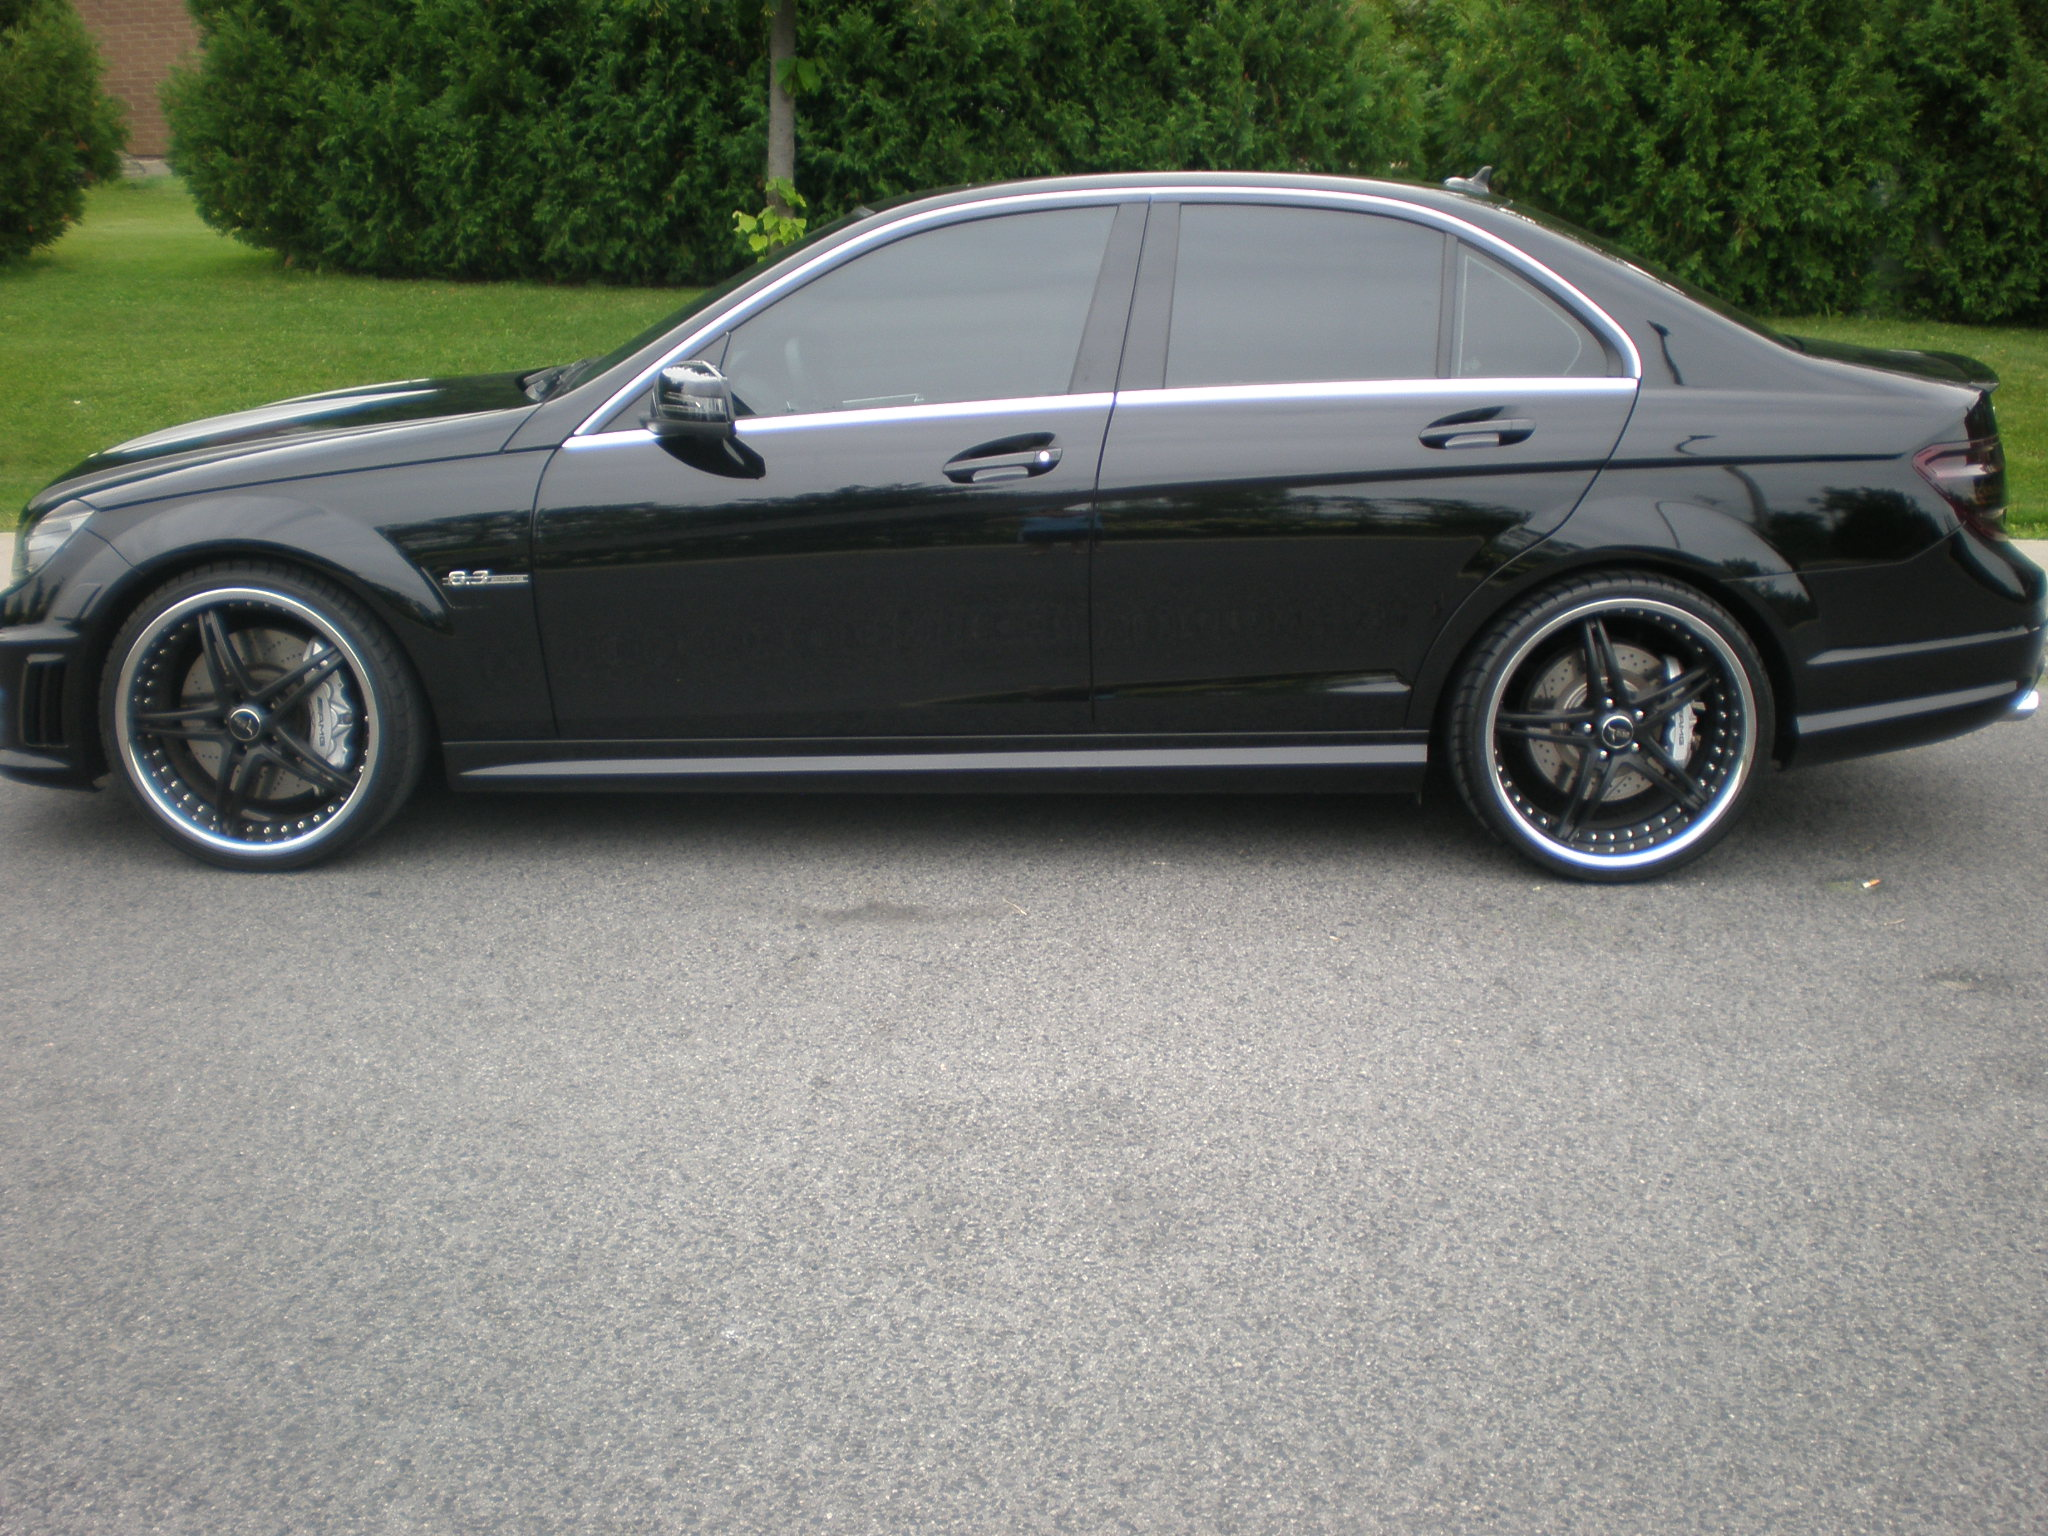 stock 2010 mercedes benz c63 amg 1 4 mile drag racing timeslip specs 0 60. Black Bedroom Furniture Sets. Home Design Ideas